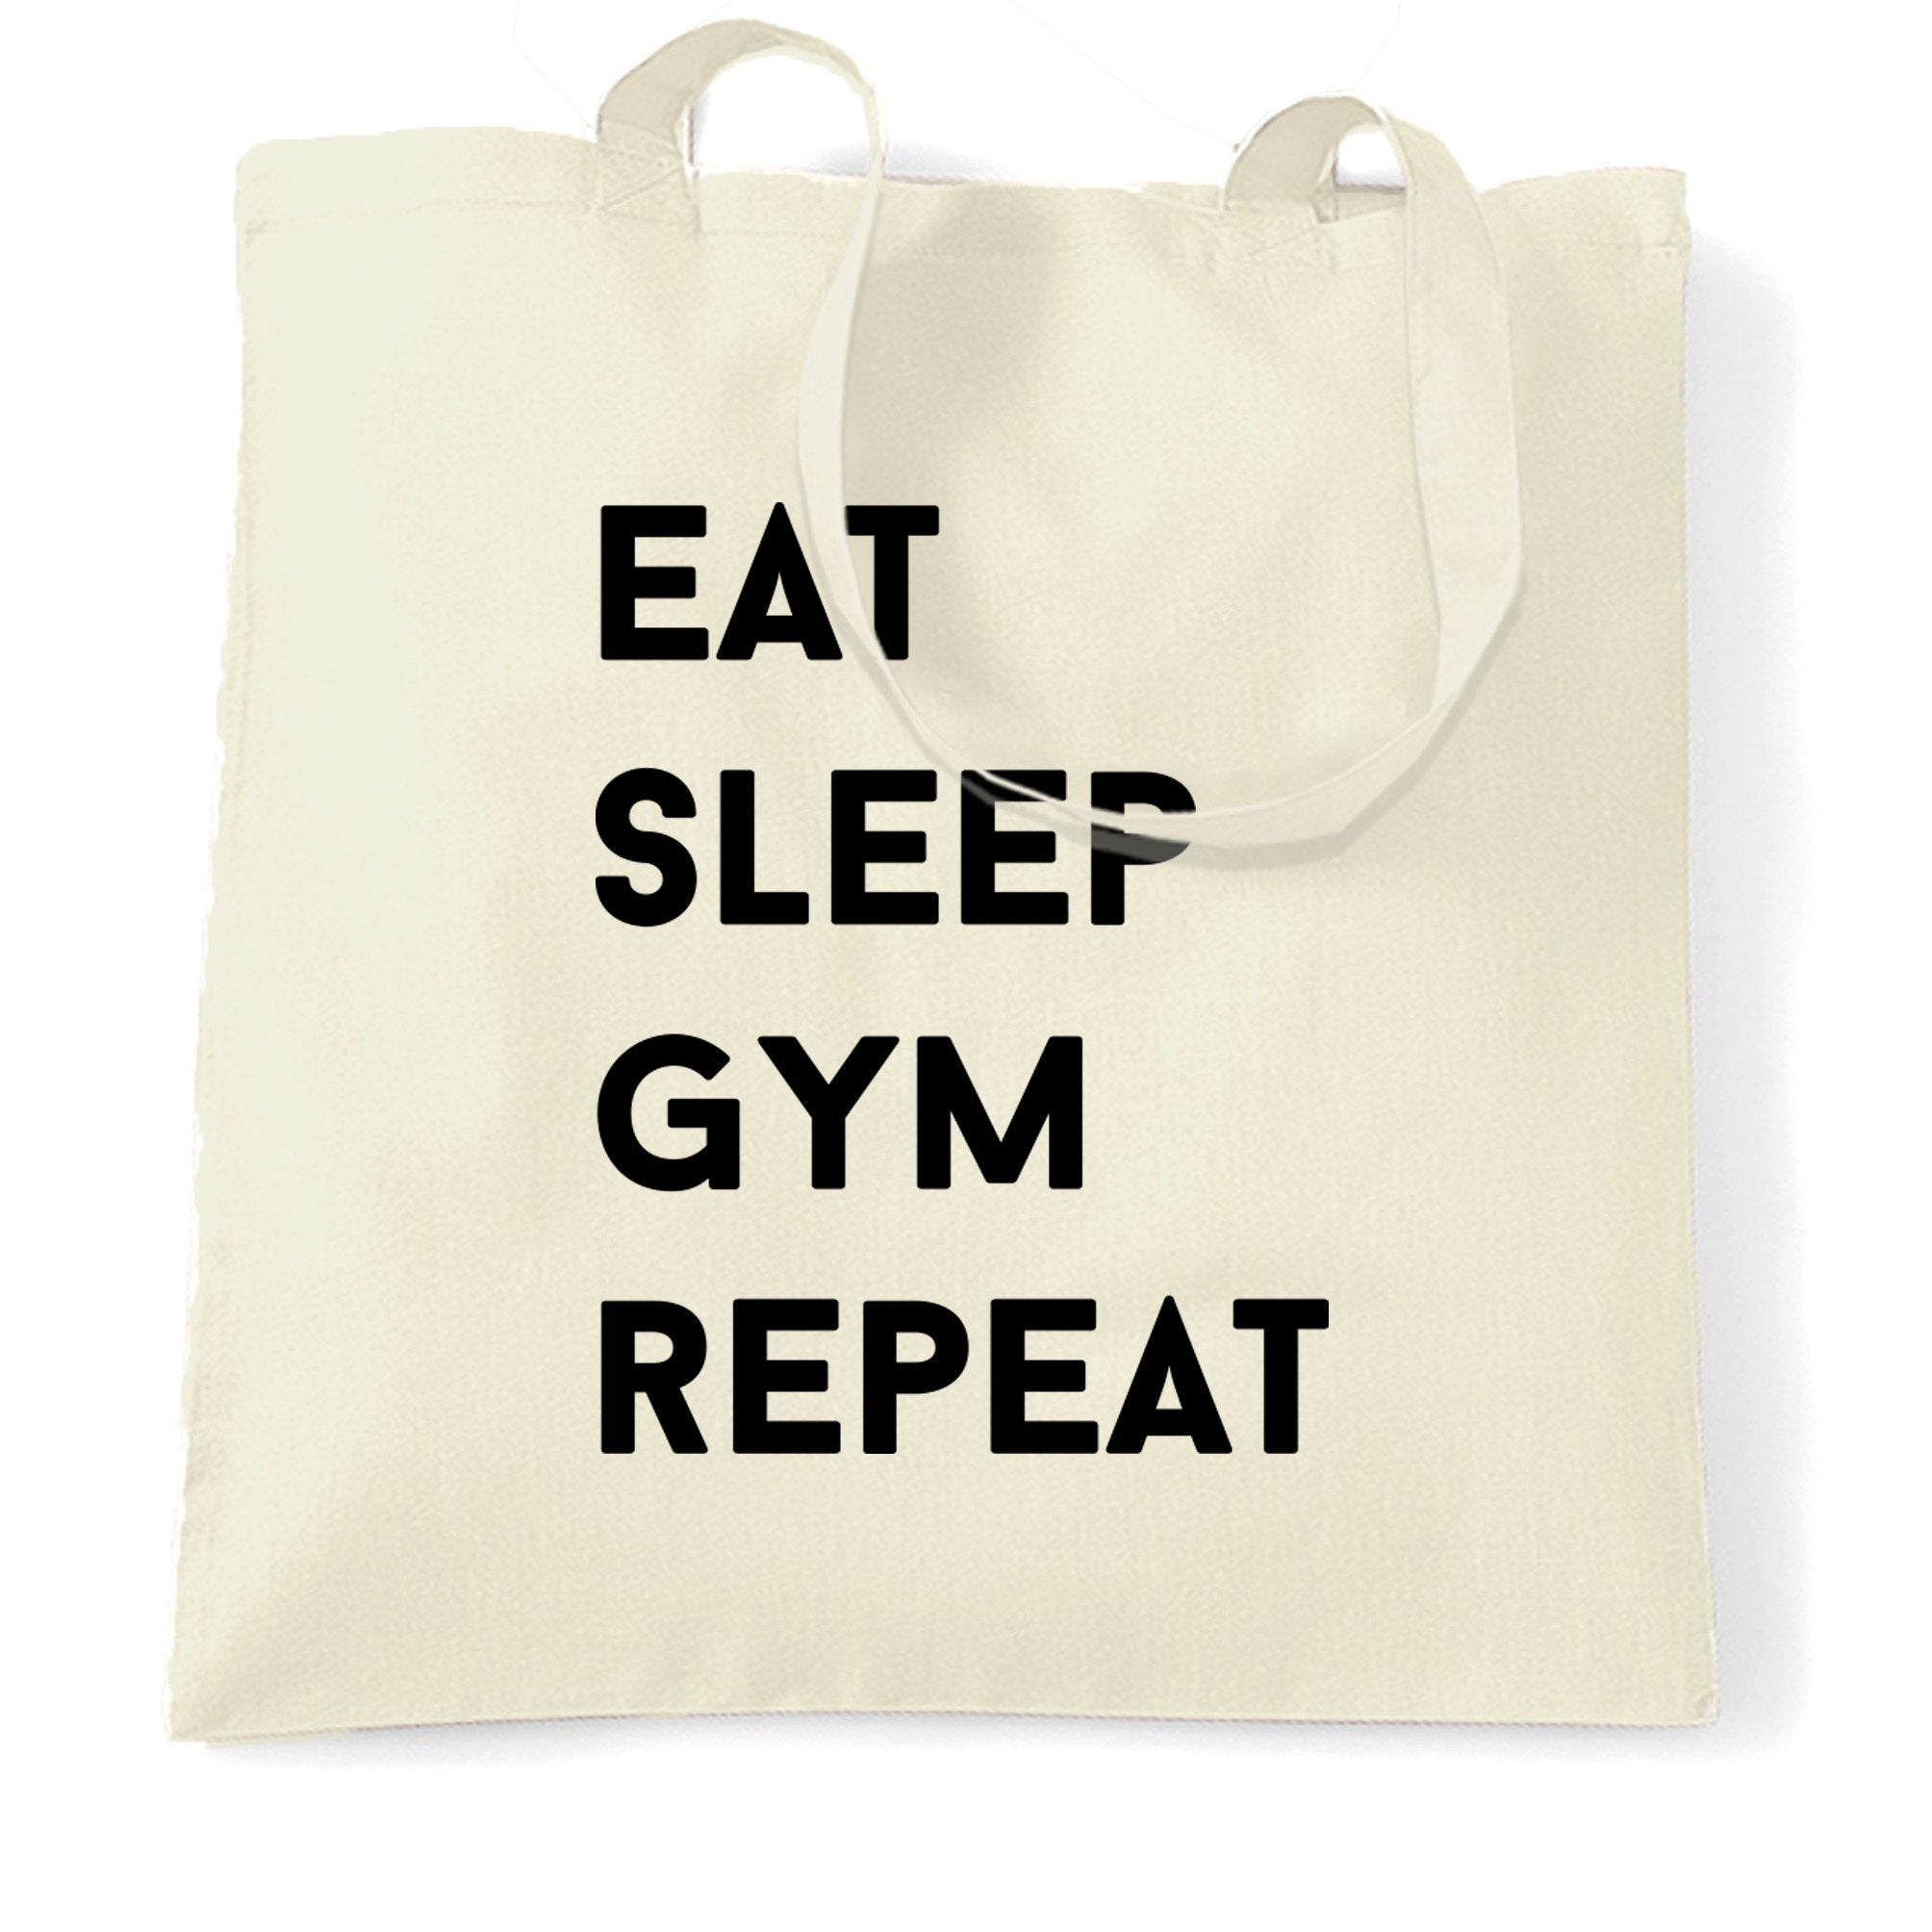 Novelty Tote Bag Eat, Sleep, Gym, Repeat Slogan